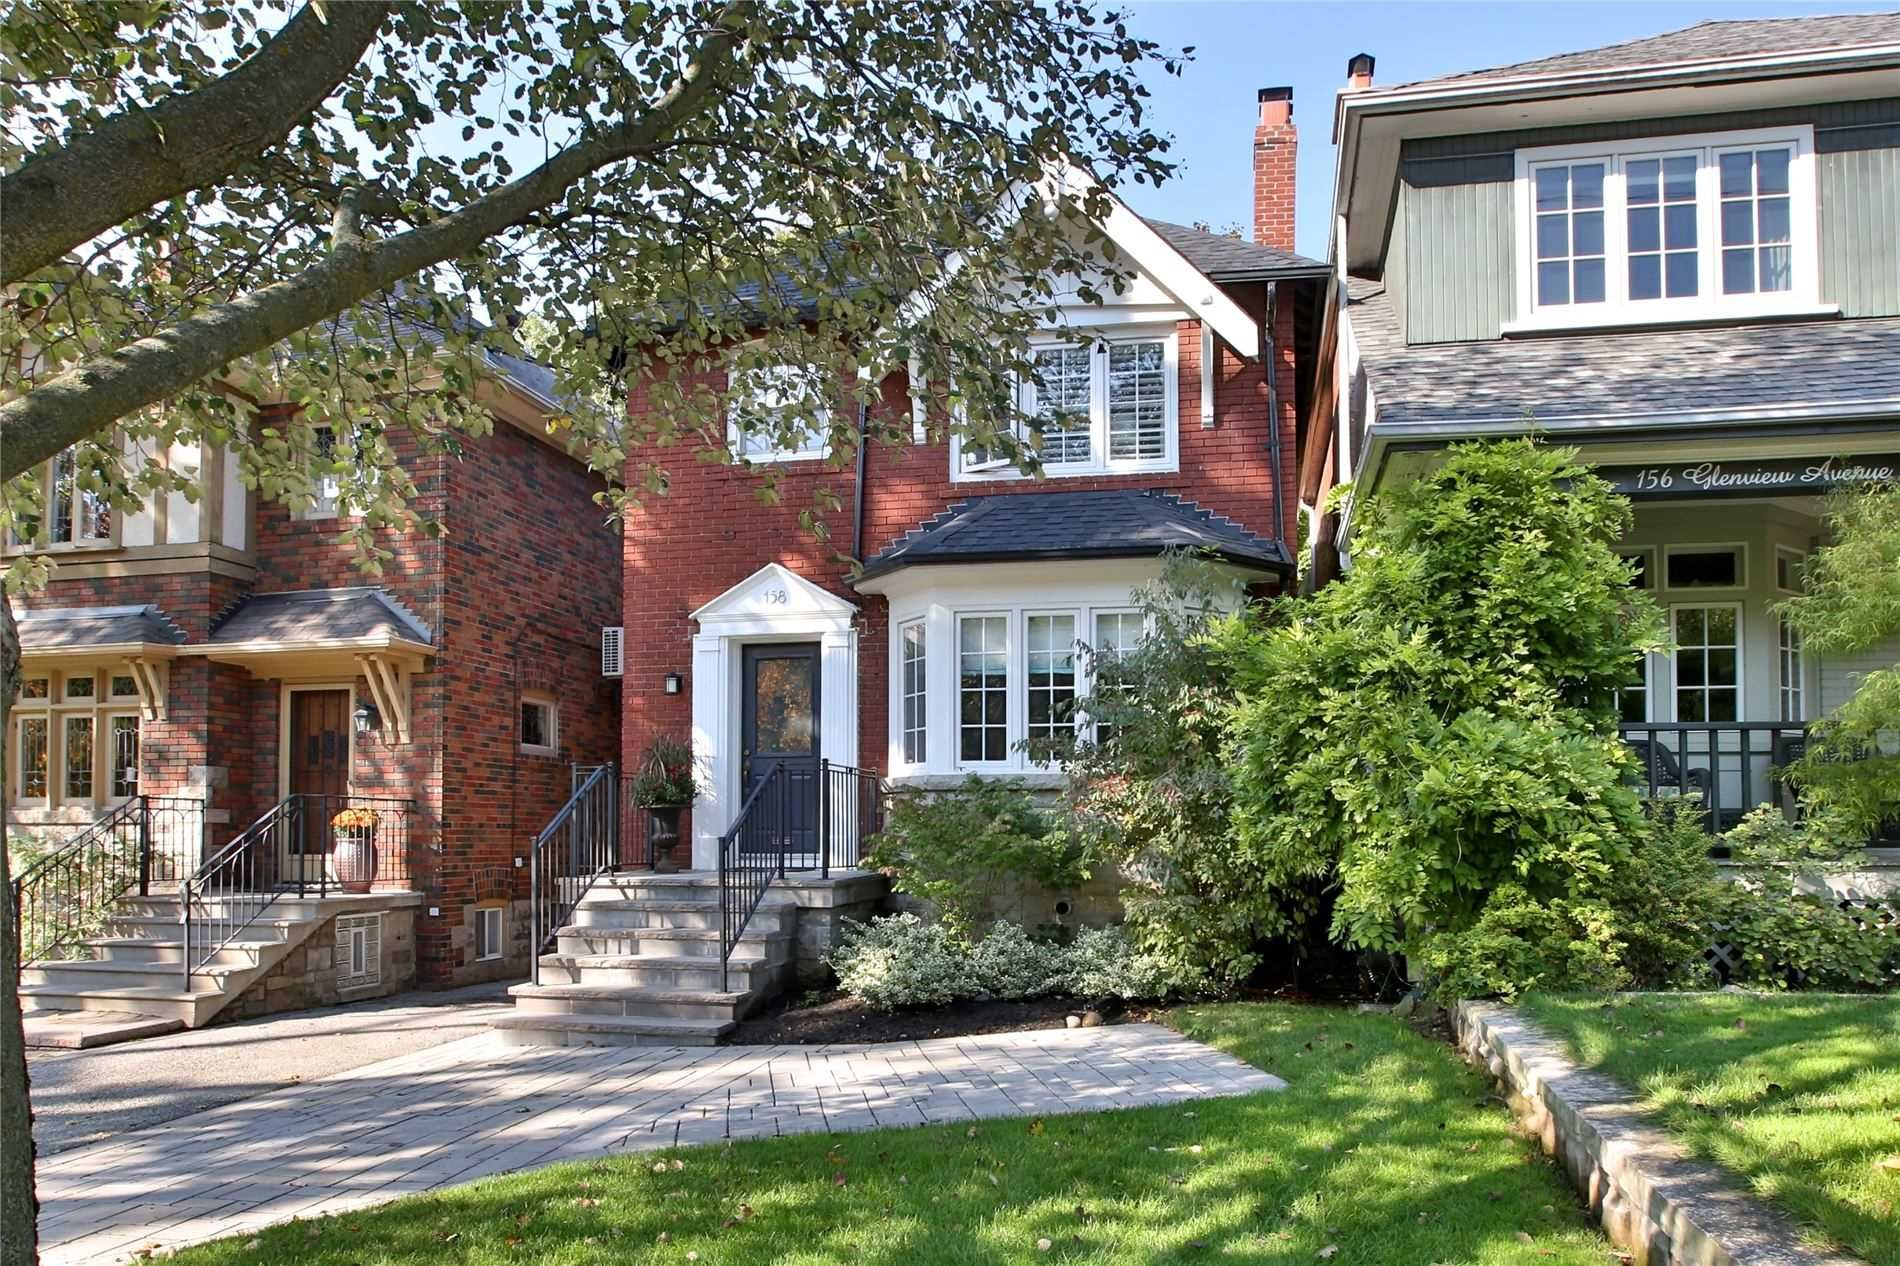 Main Photo: 158 Glenview Avenue in Toronto: Lawrence Park South House (2-Storey) for sale (Toronto C04)  : MLS®# C5222173